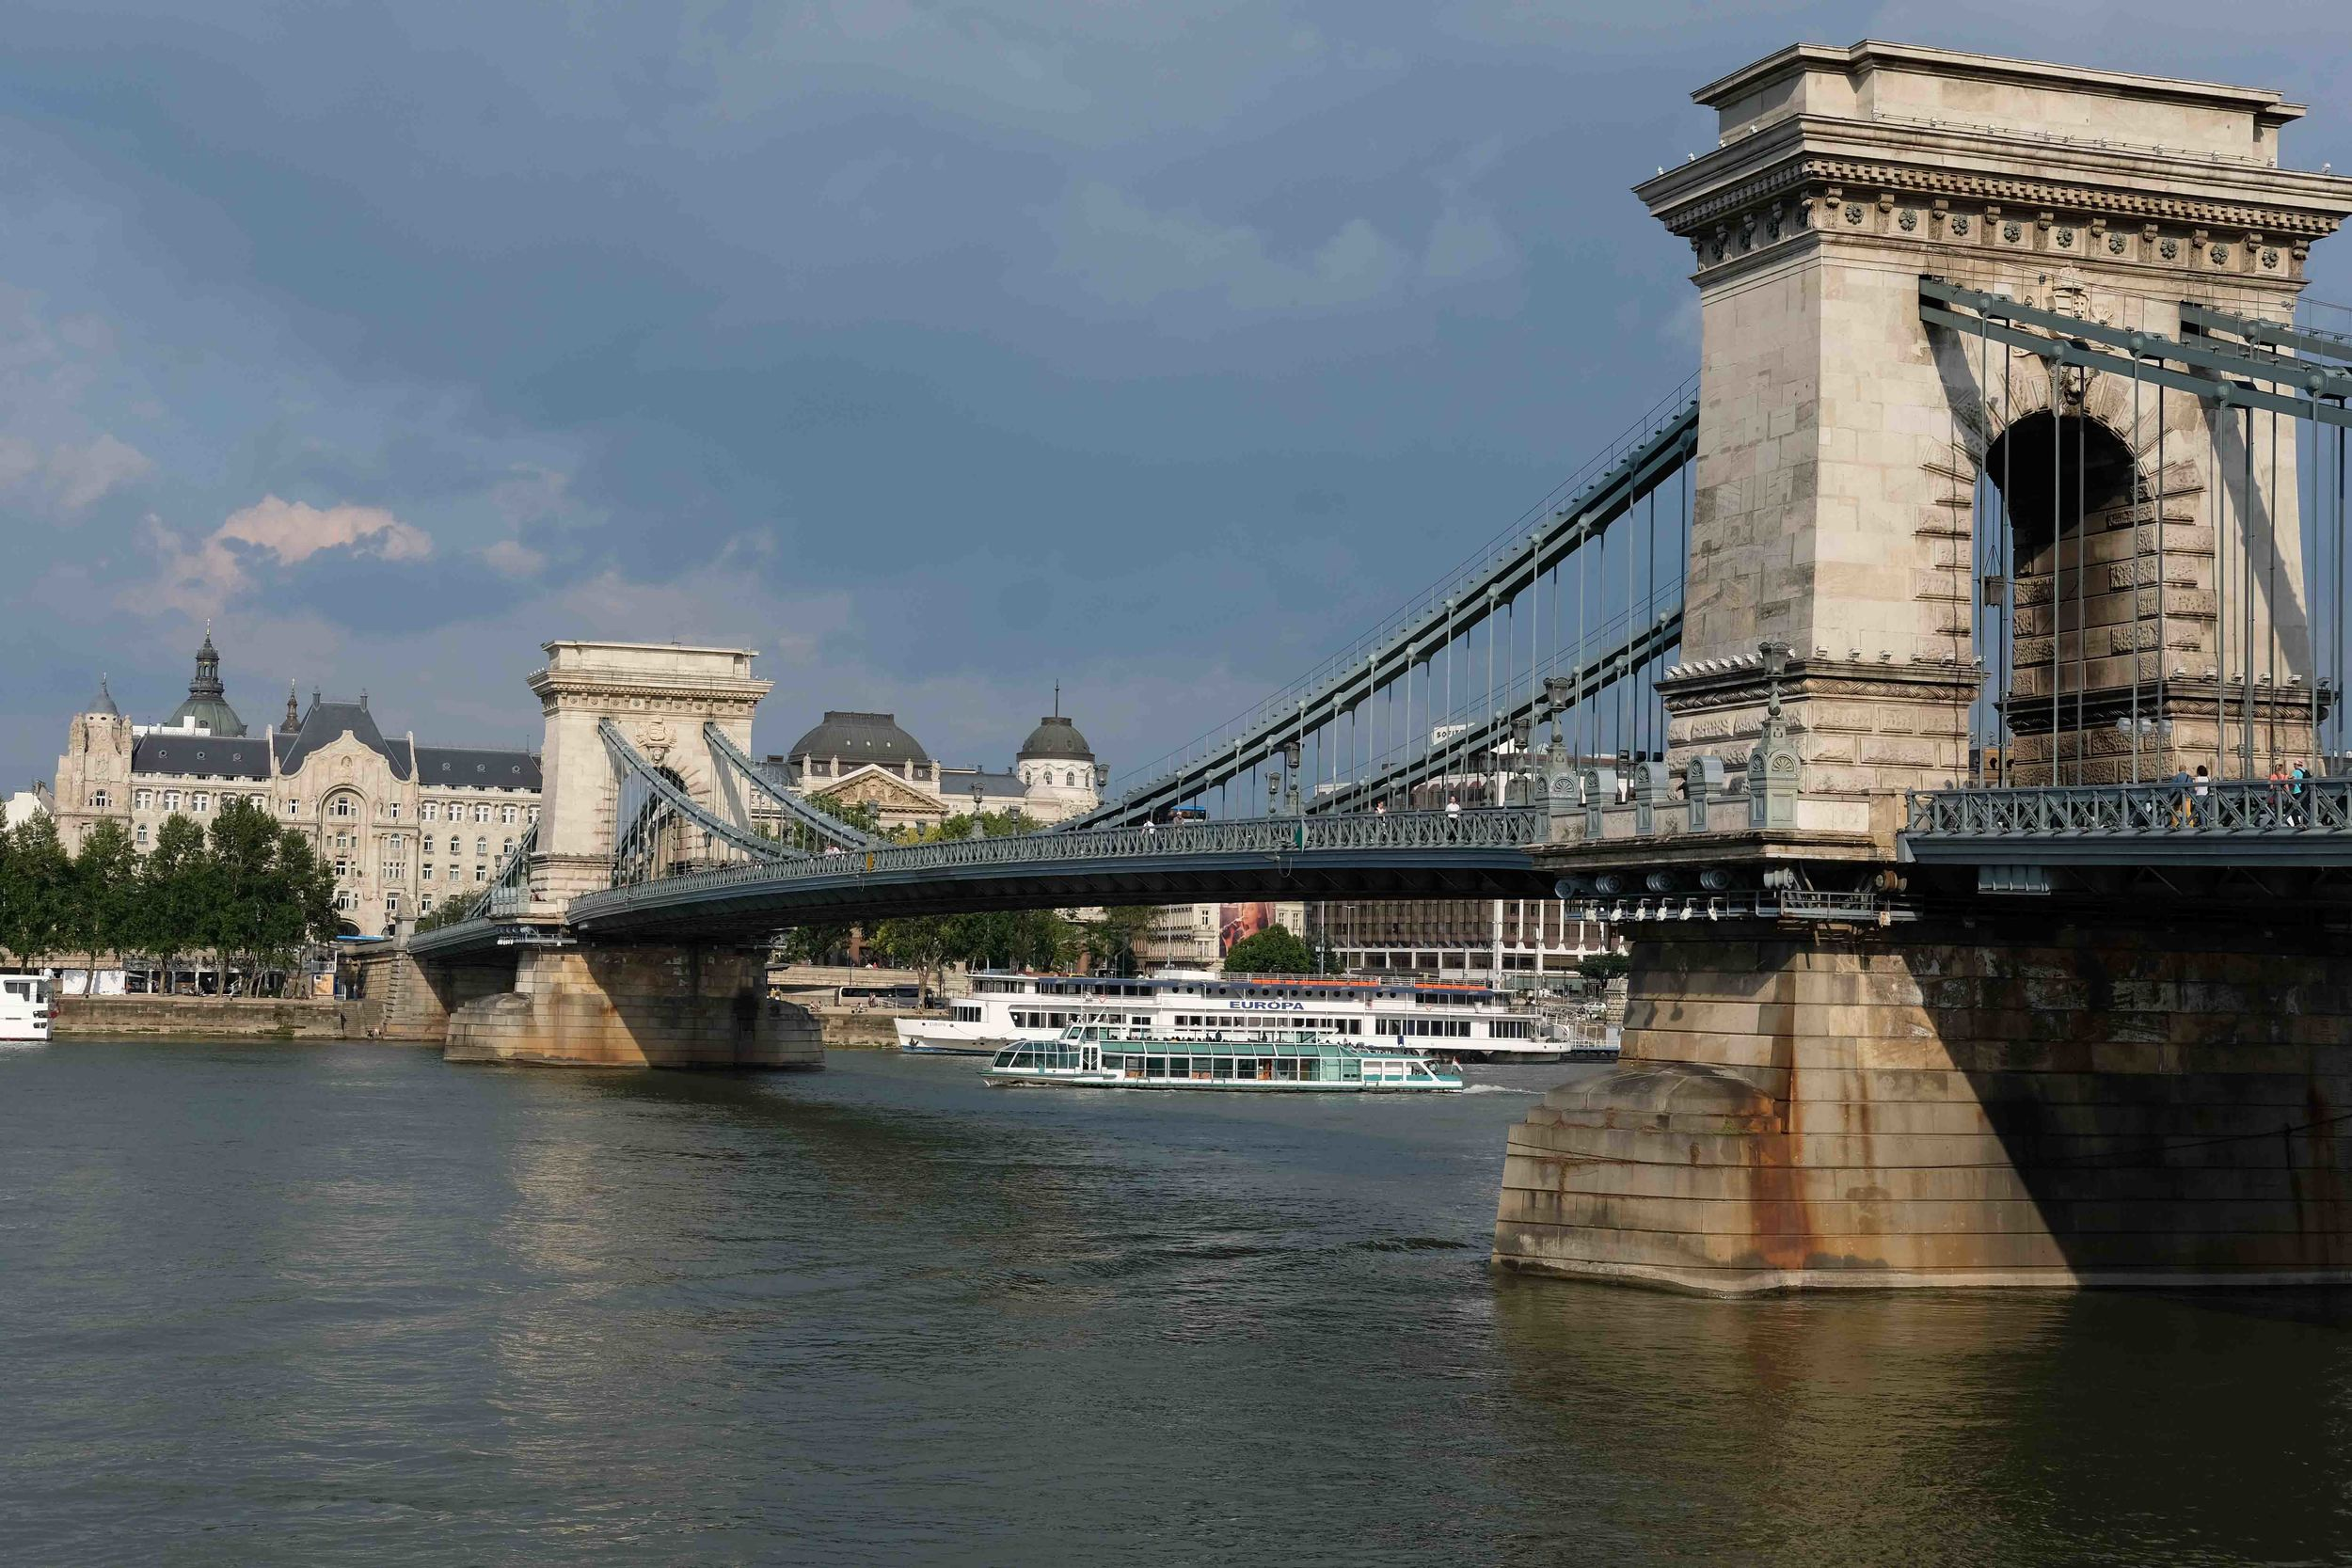 Rebuilt Chain Bridge. Original demolished in WWII From Buda side looking over to Pest.